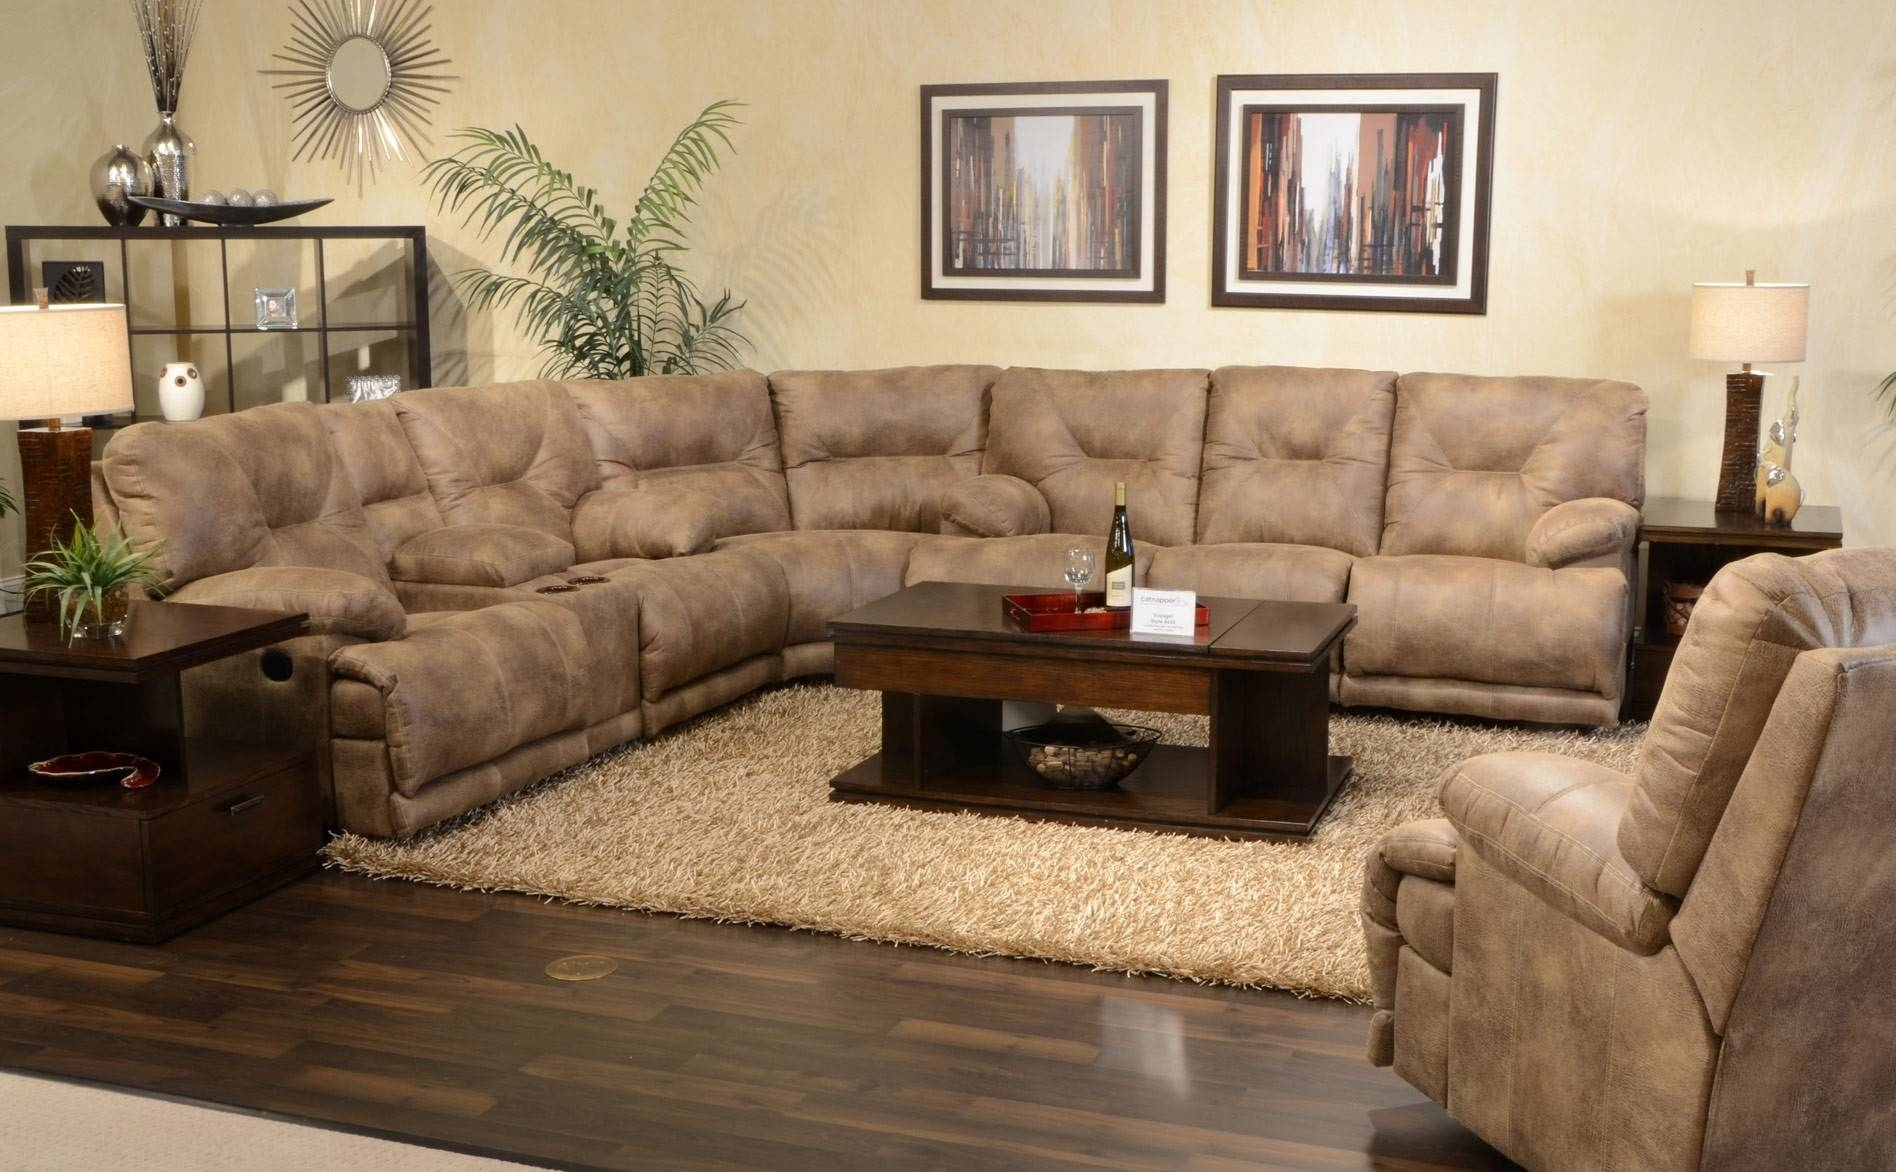 Furniture. Gorgeous Extra Large Sectional Sofas For The Airy in Extra Large Leather Sectional Sofas (Image 3 of 15)